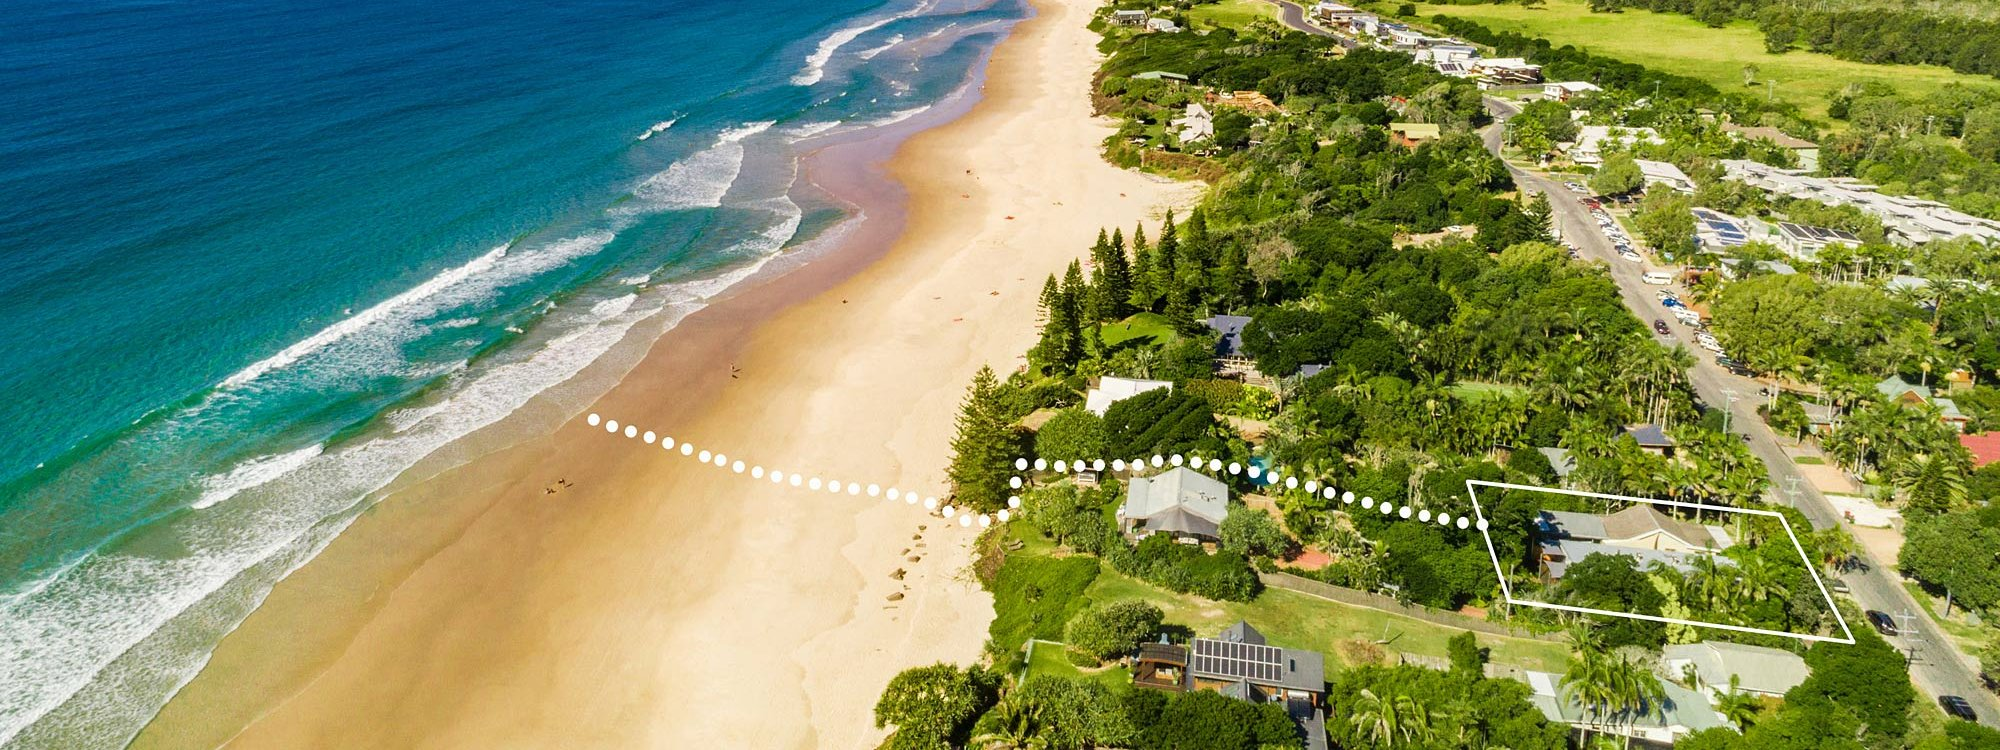 BillaBelongil - Byron Bay - Aerial Shot with Path to Beach c